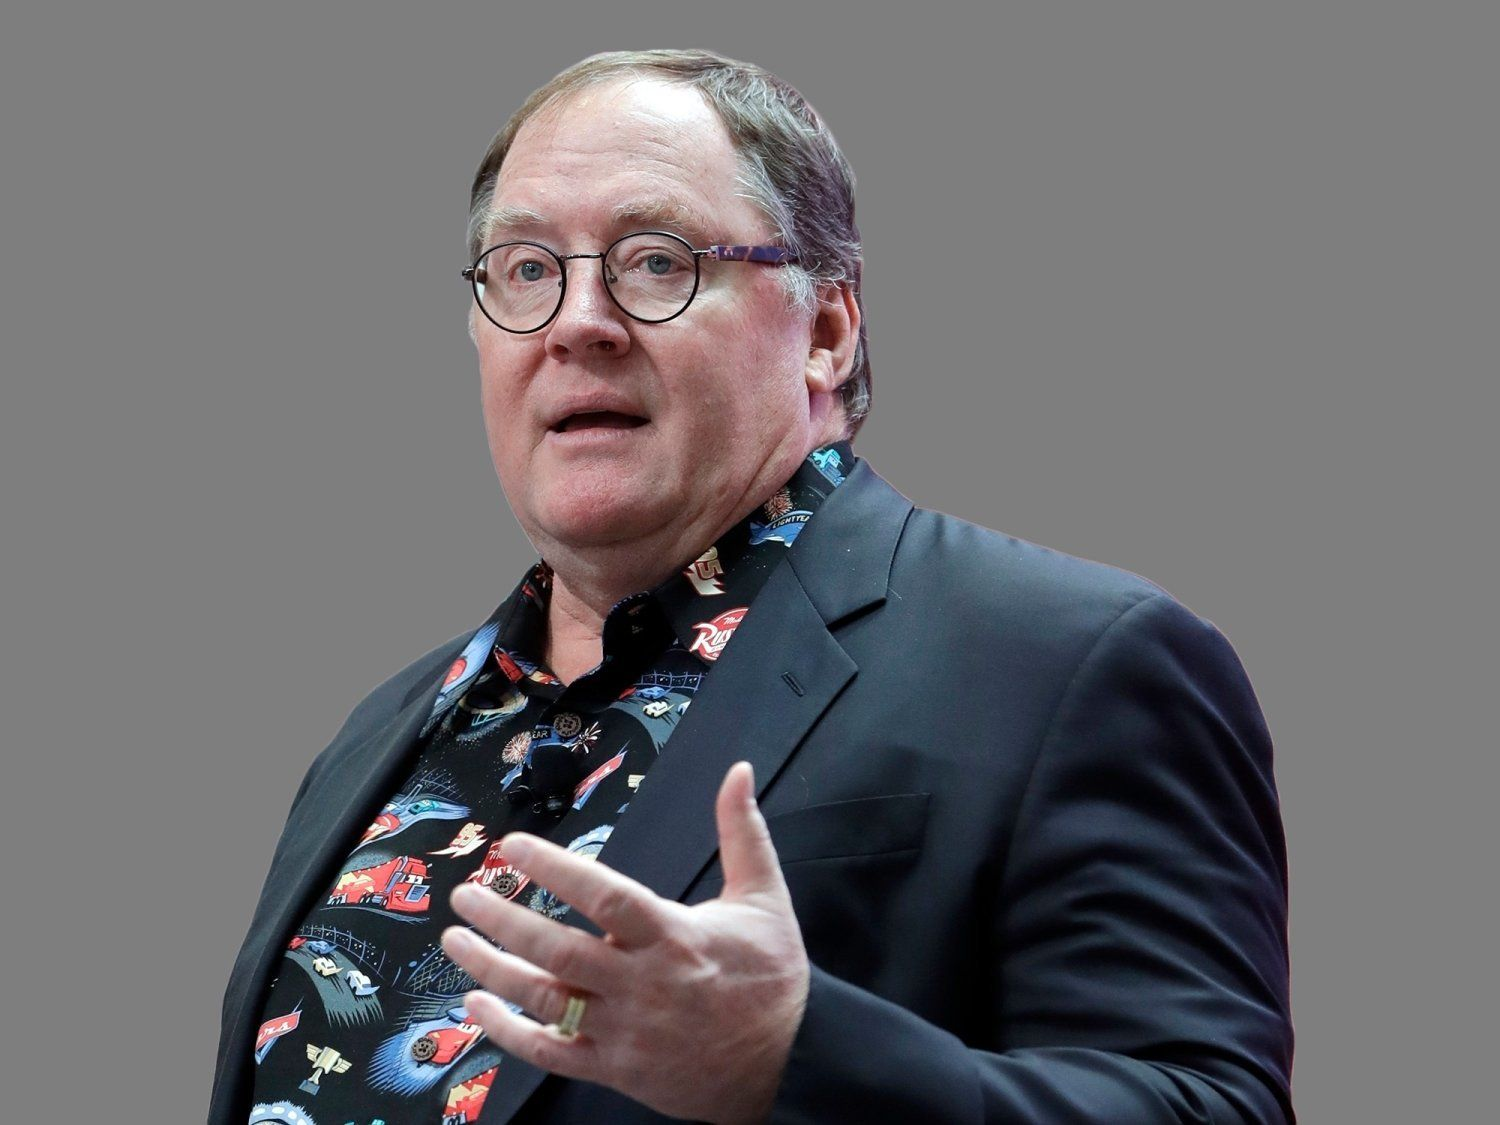 John Lasseter, who stepped down from Pixar after reports of serial sexual harassment, has been named...